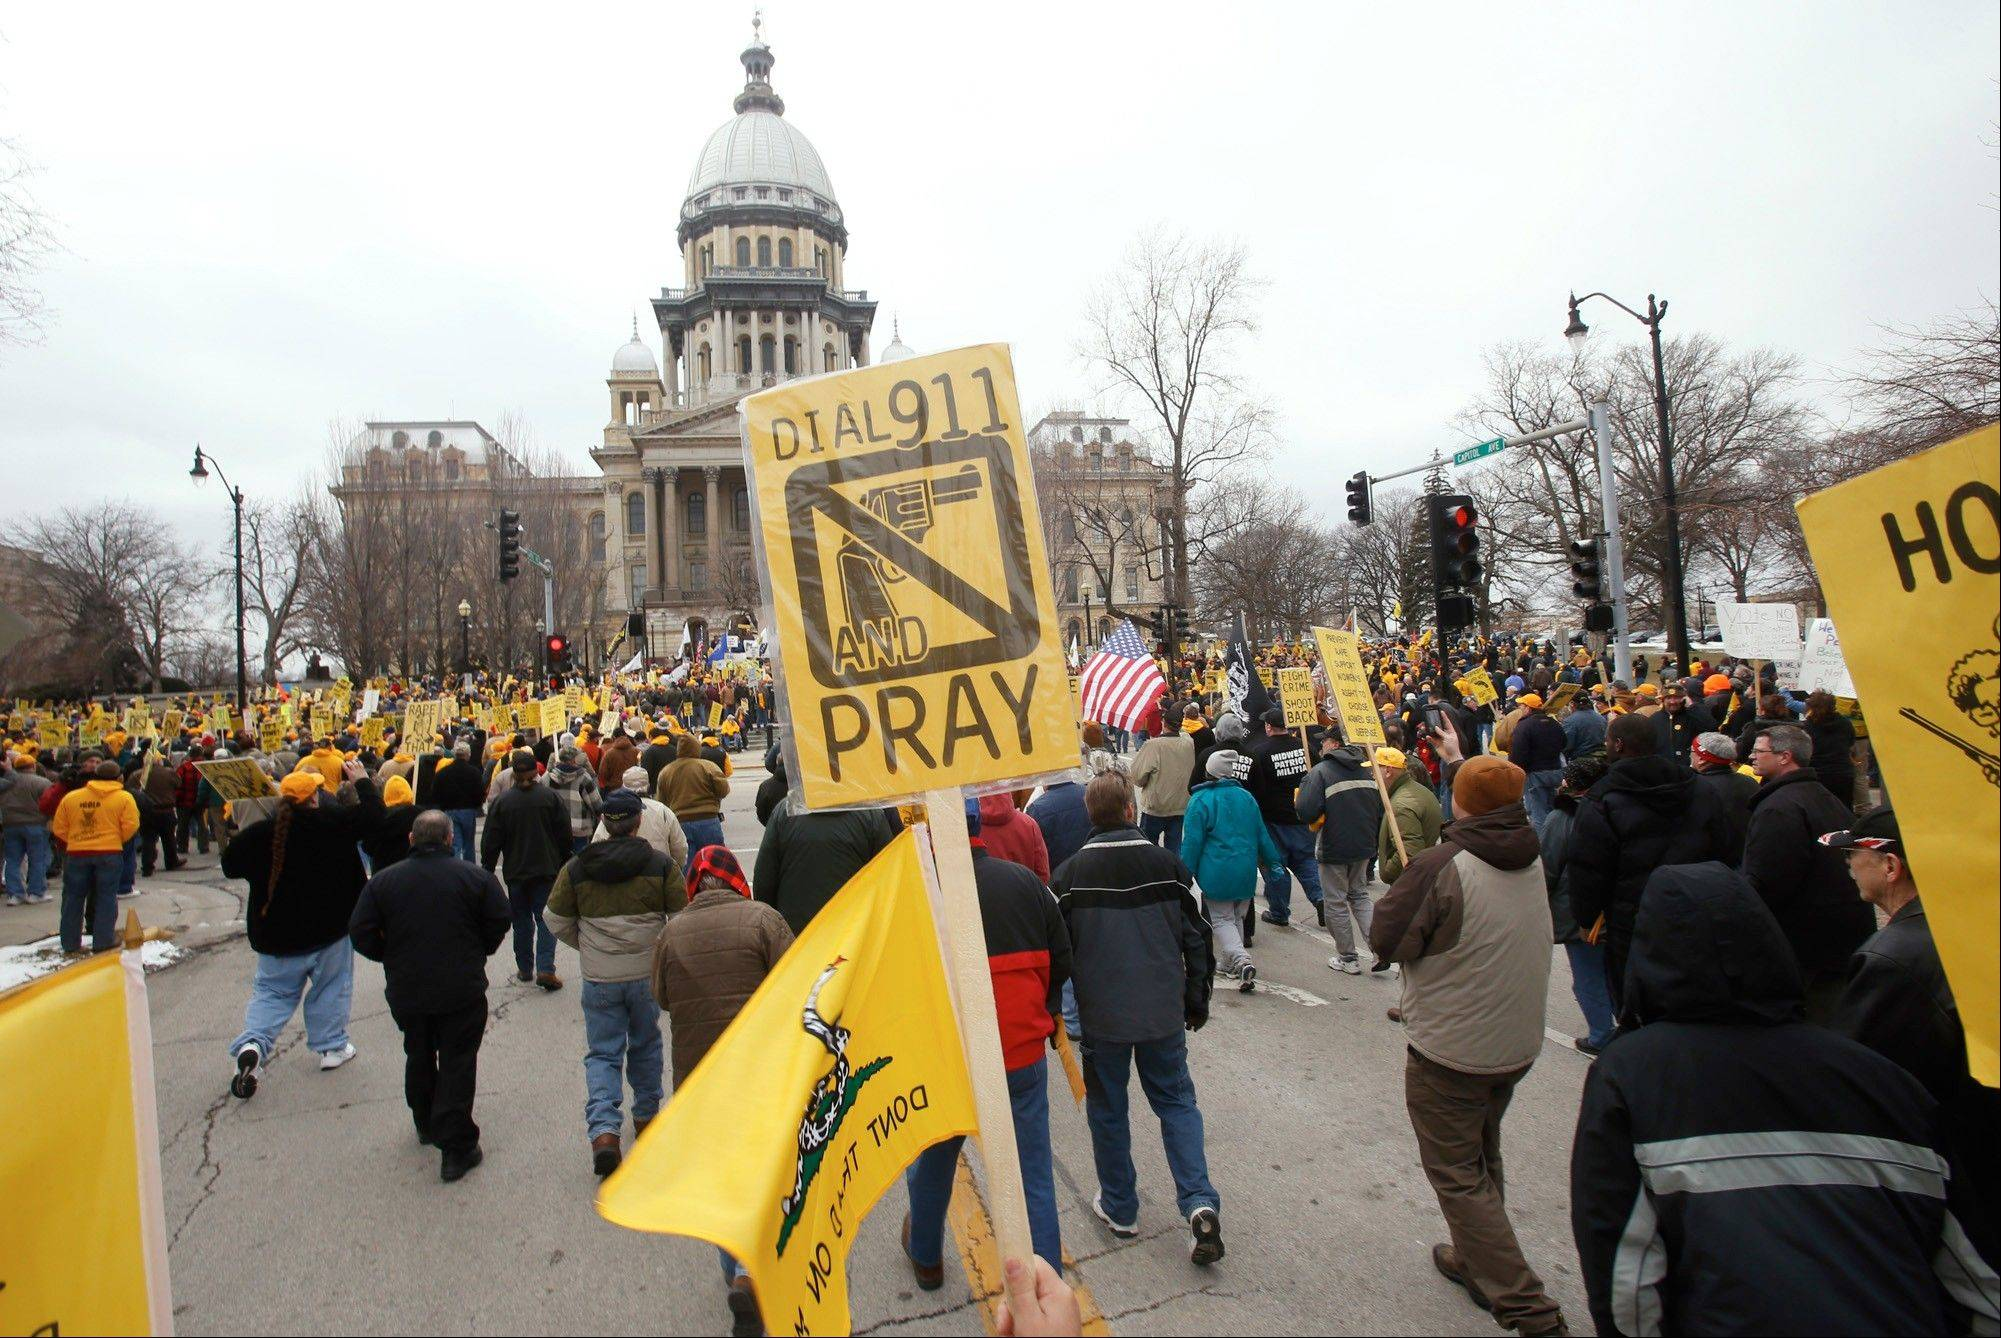 Hundreds of gun owners and supporters marched at the state Capitol in Springfield Wednesday in a rally sponsored by the Illinois State Rifle Association, in partnership with IllinoisCarry.com and other groups, including the McHenry County Right to Carry Association.